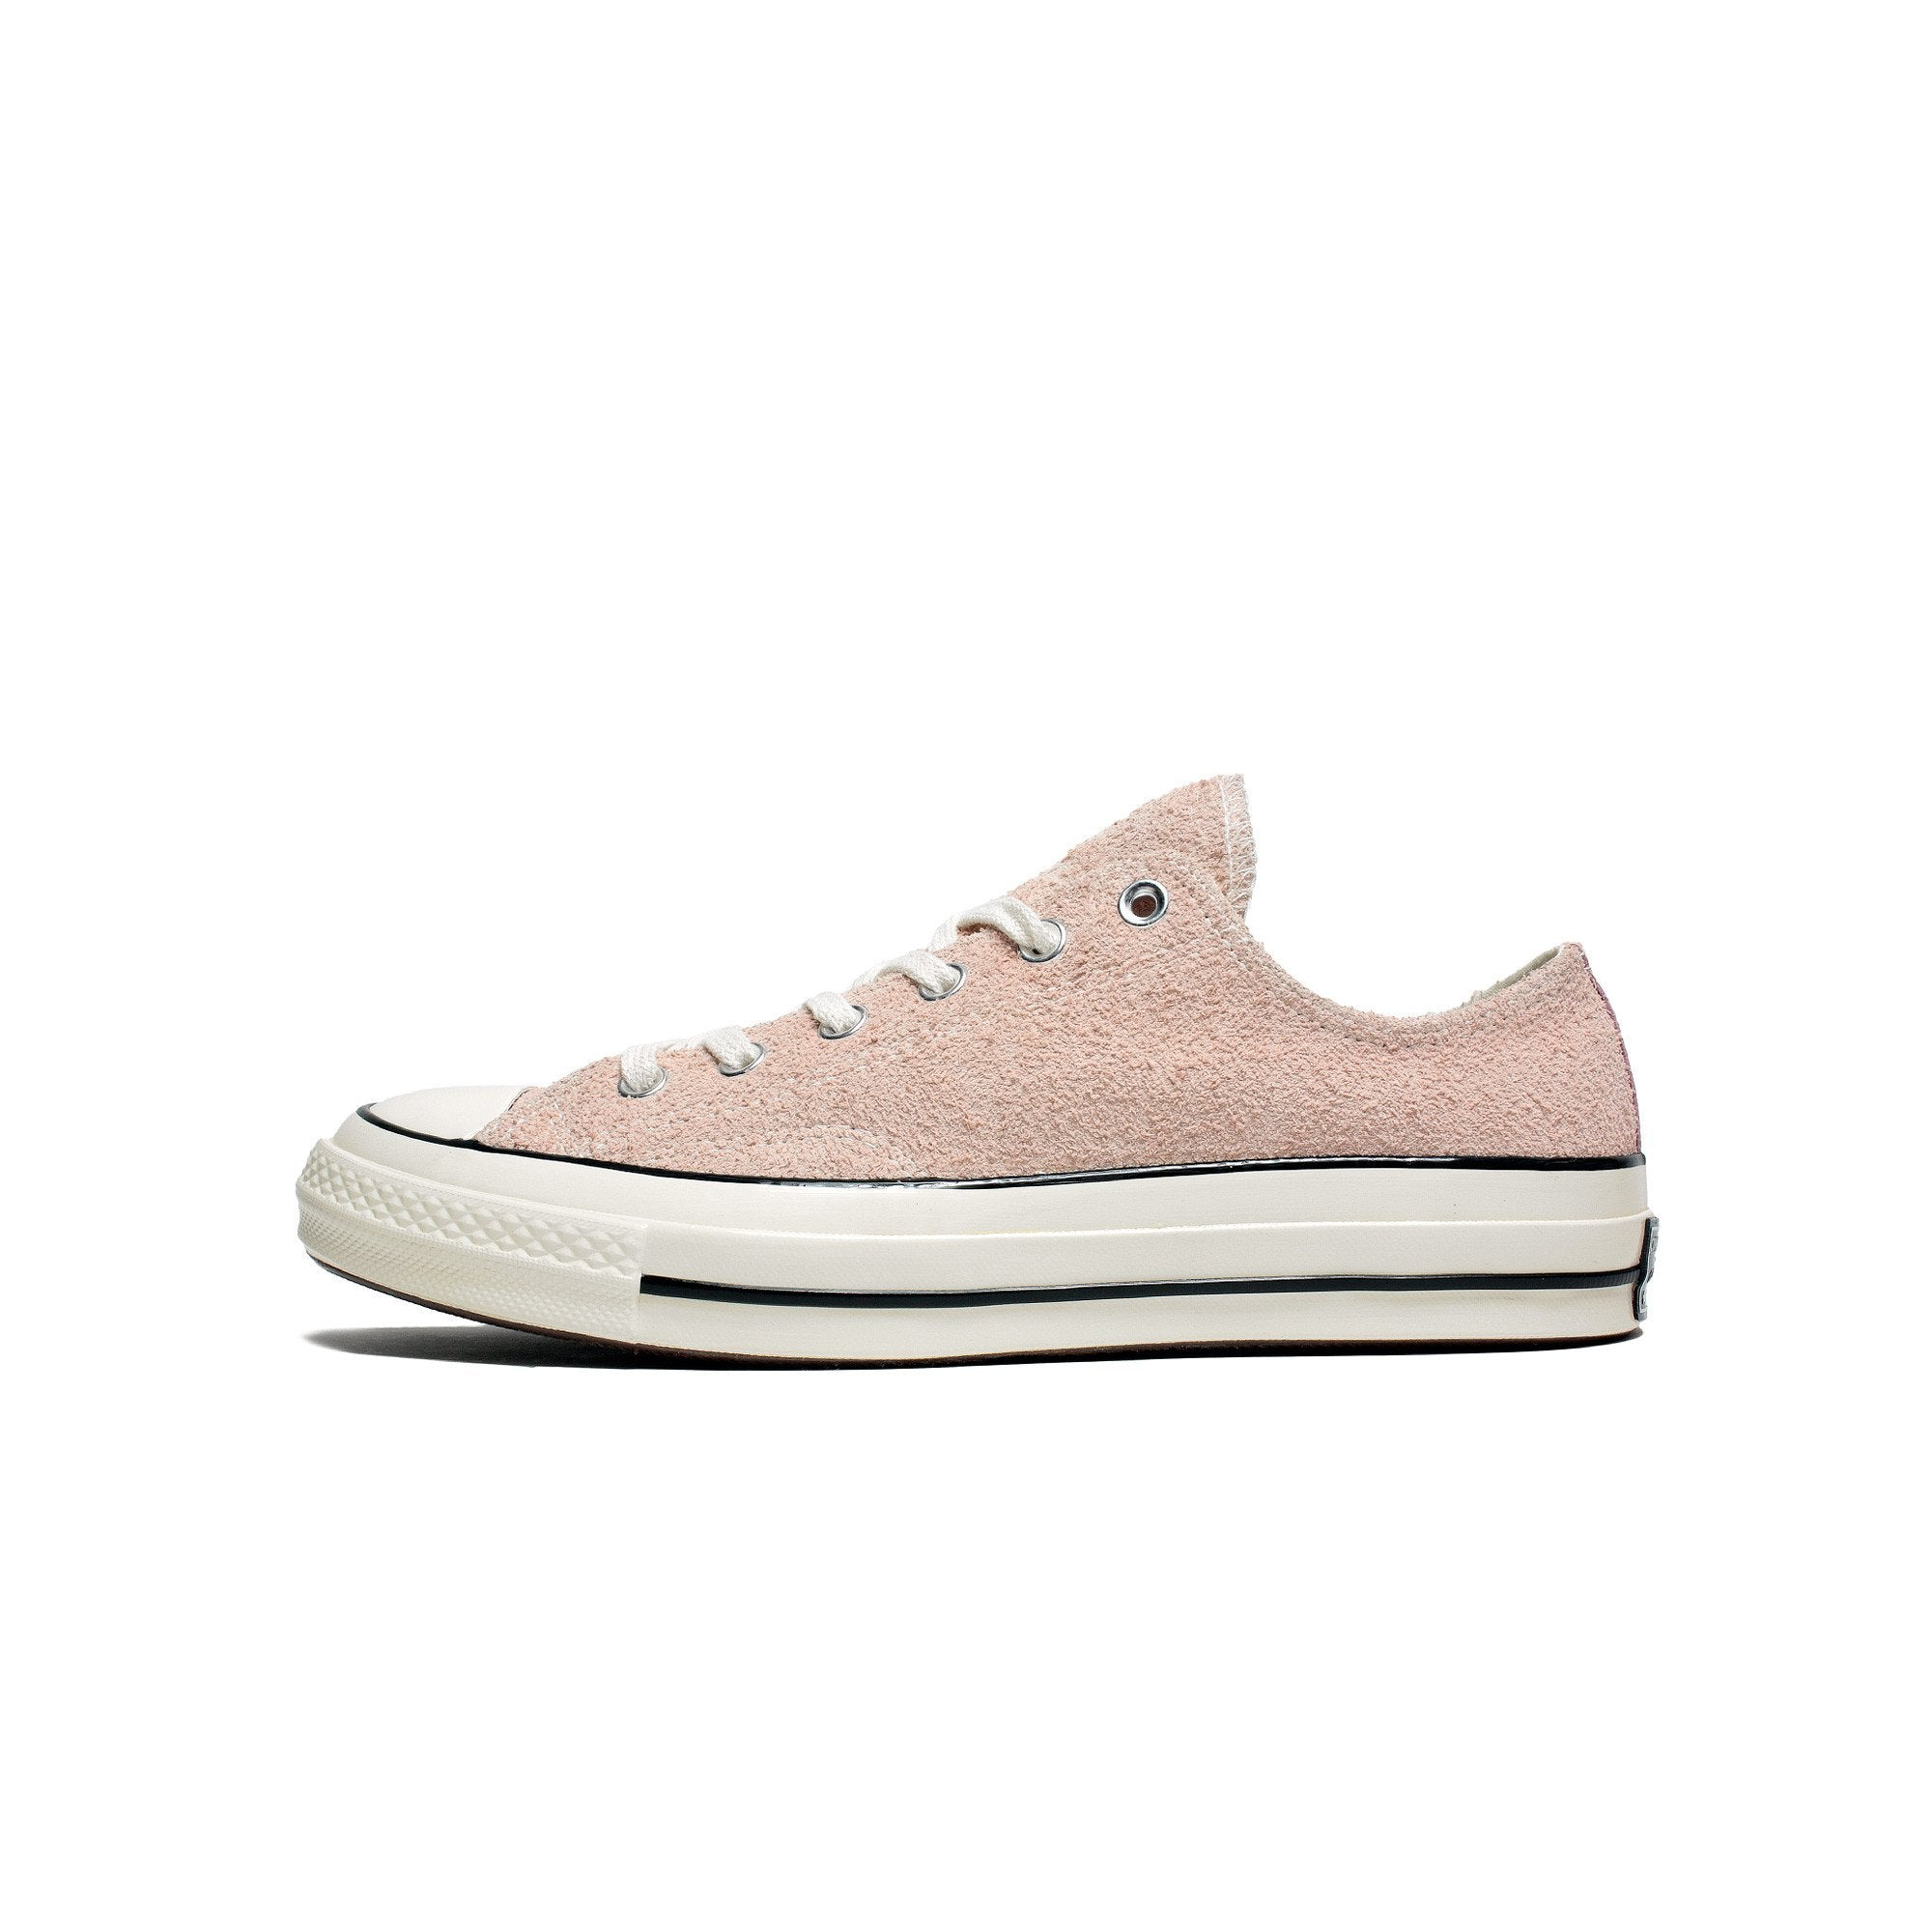 6ad319e64fcacb Details about Mens Converse Chuck Taylor All Star  70 Ox Dusk Pink Egret  157587C